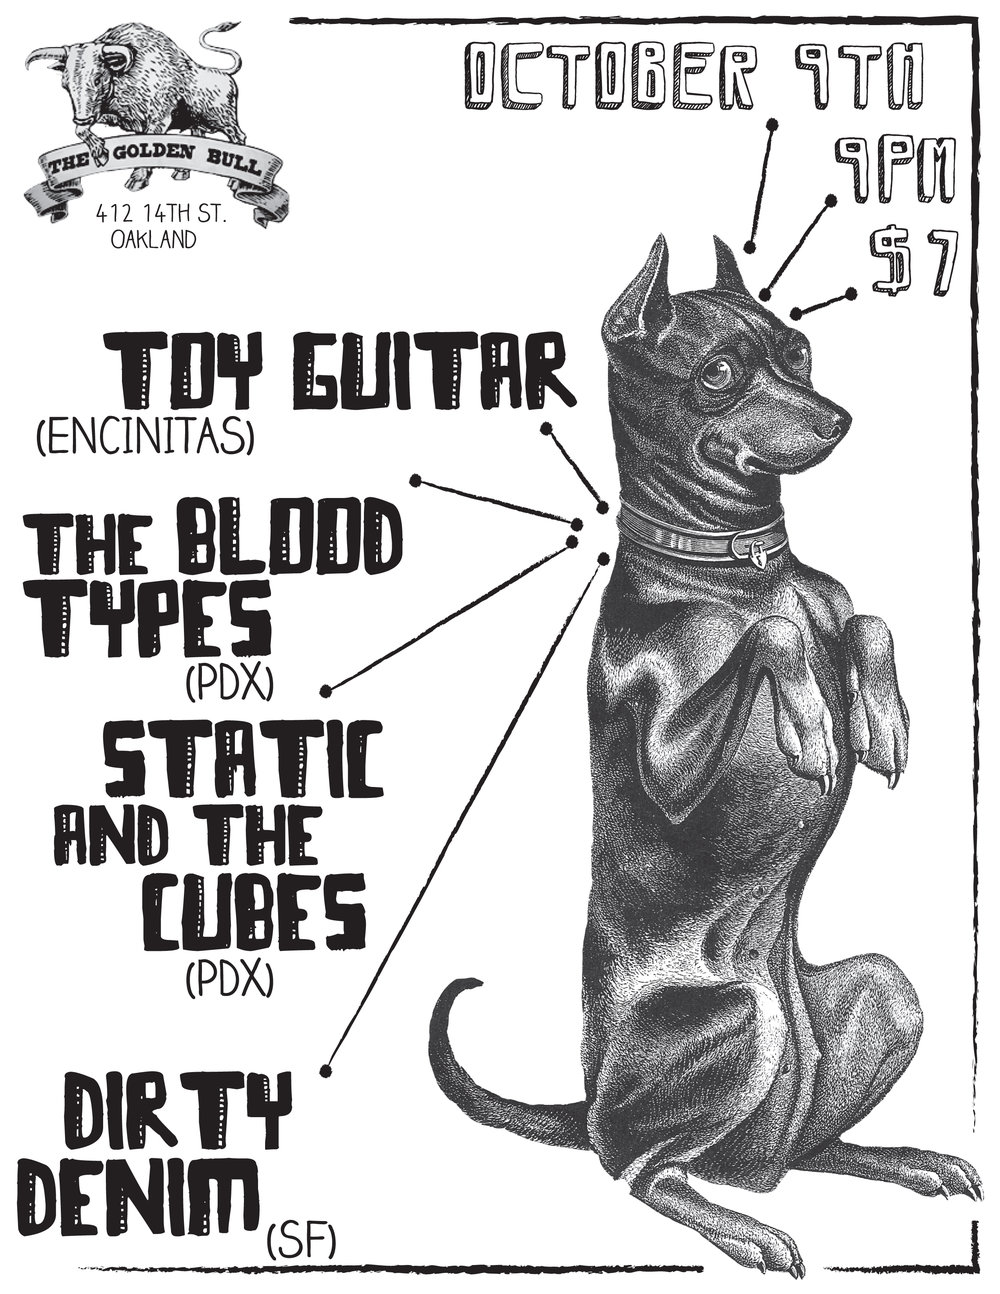 kate_band flyer_toy guitar.jpg